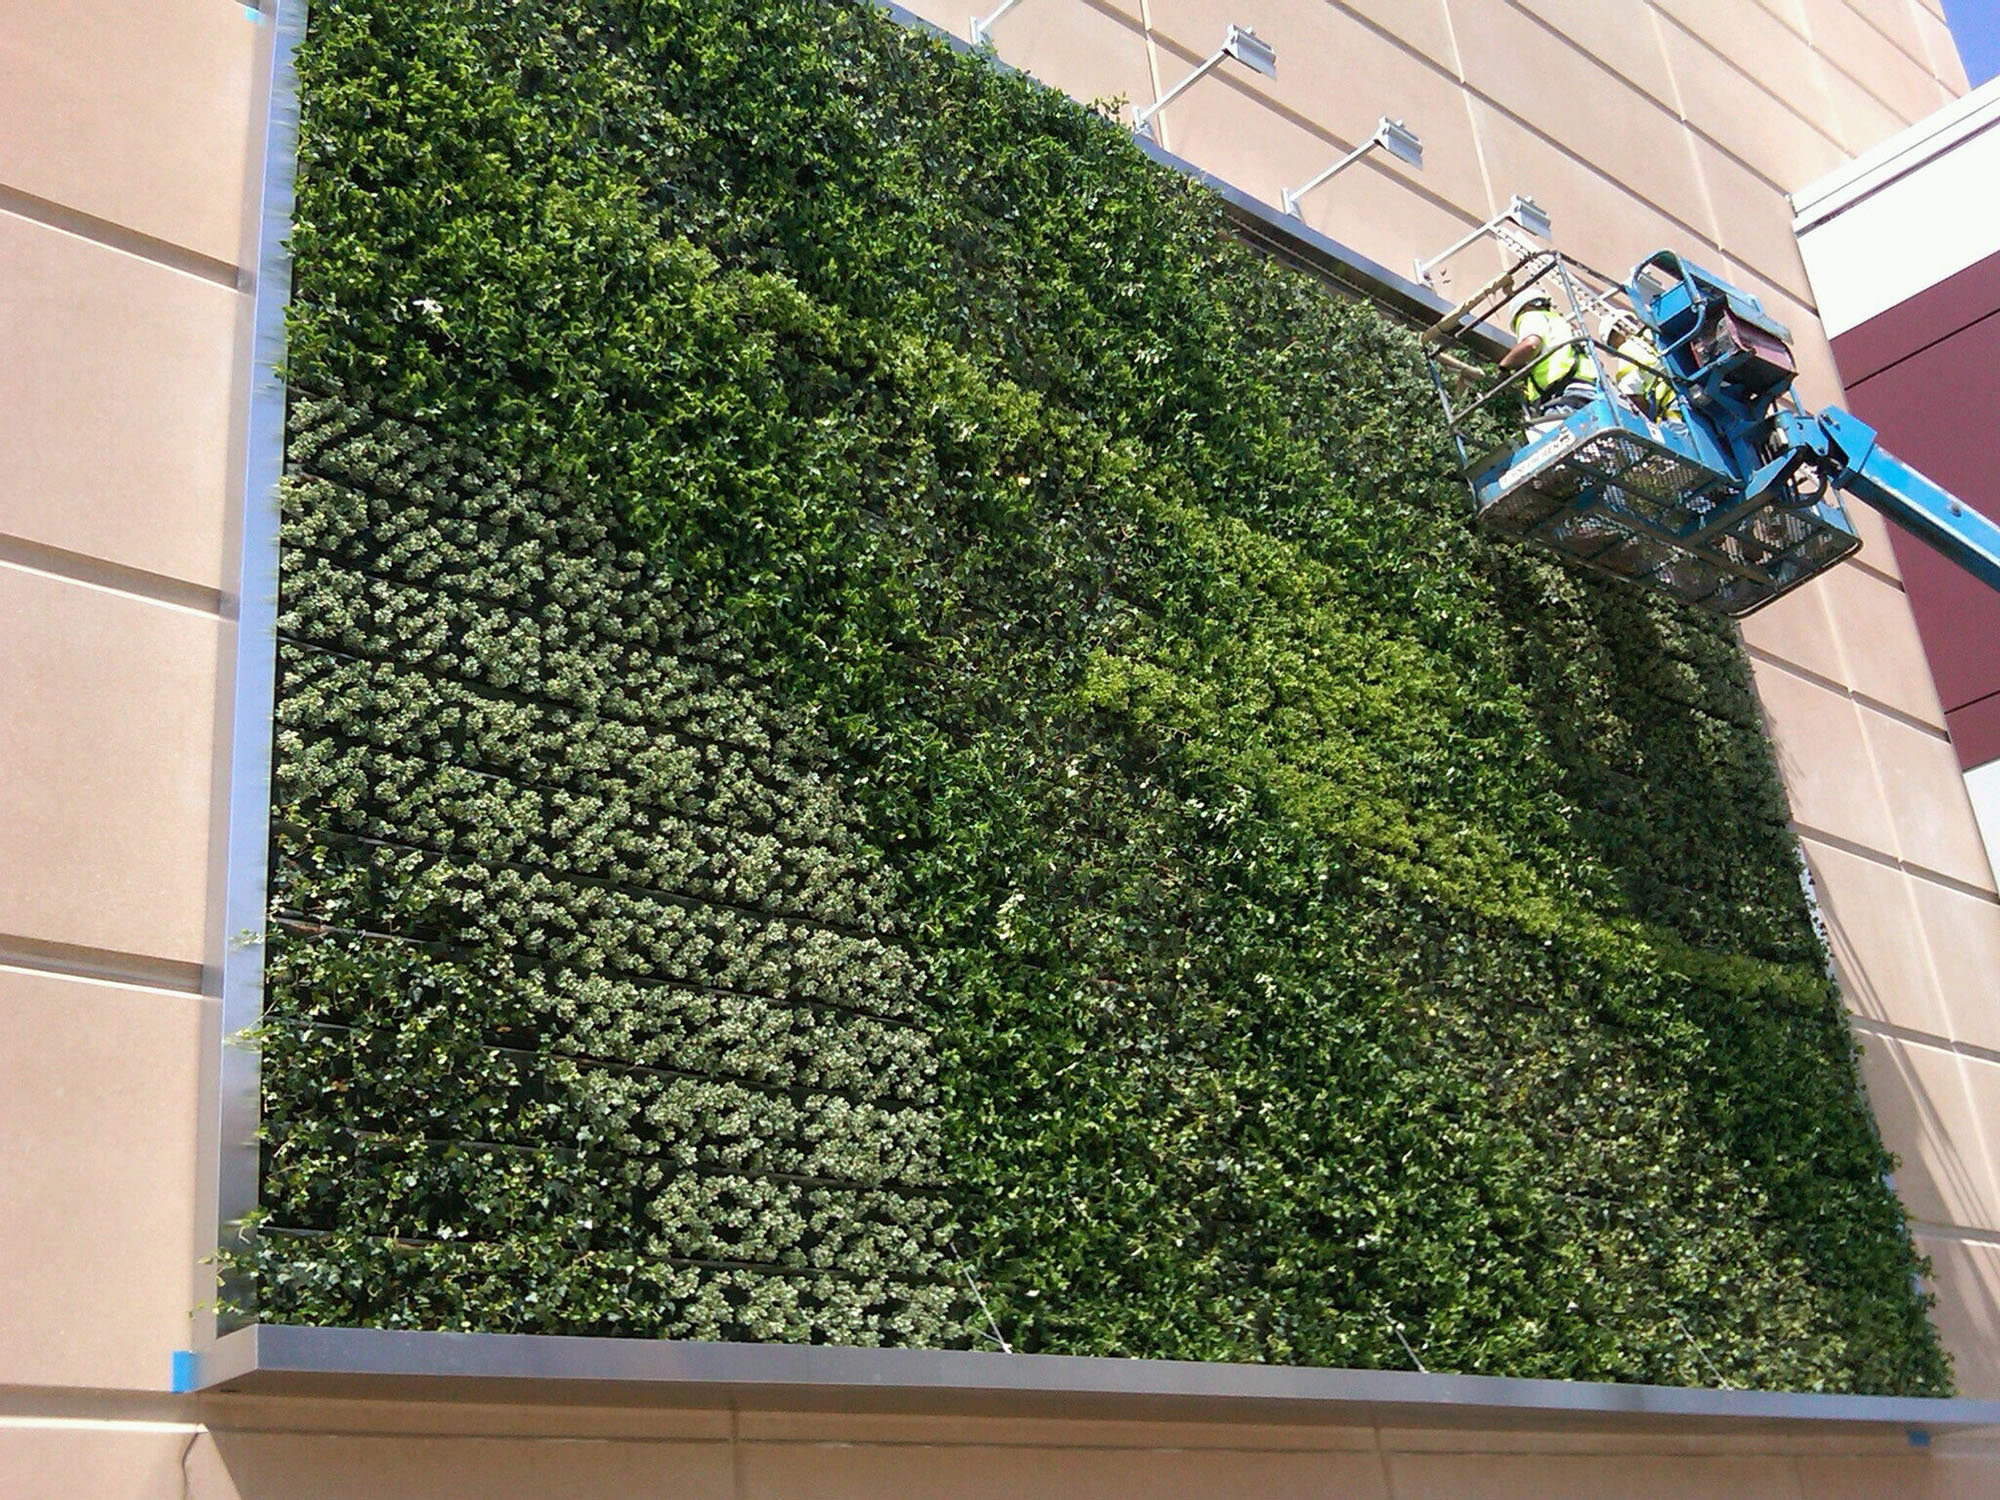 Maintenance work being done on a living green wall.